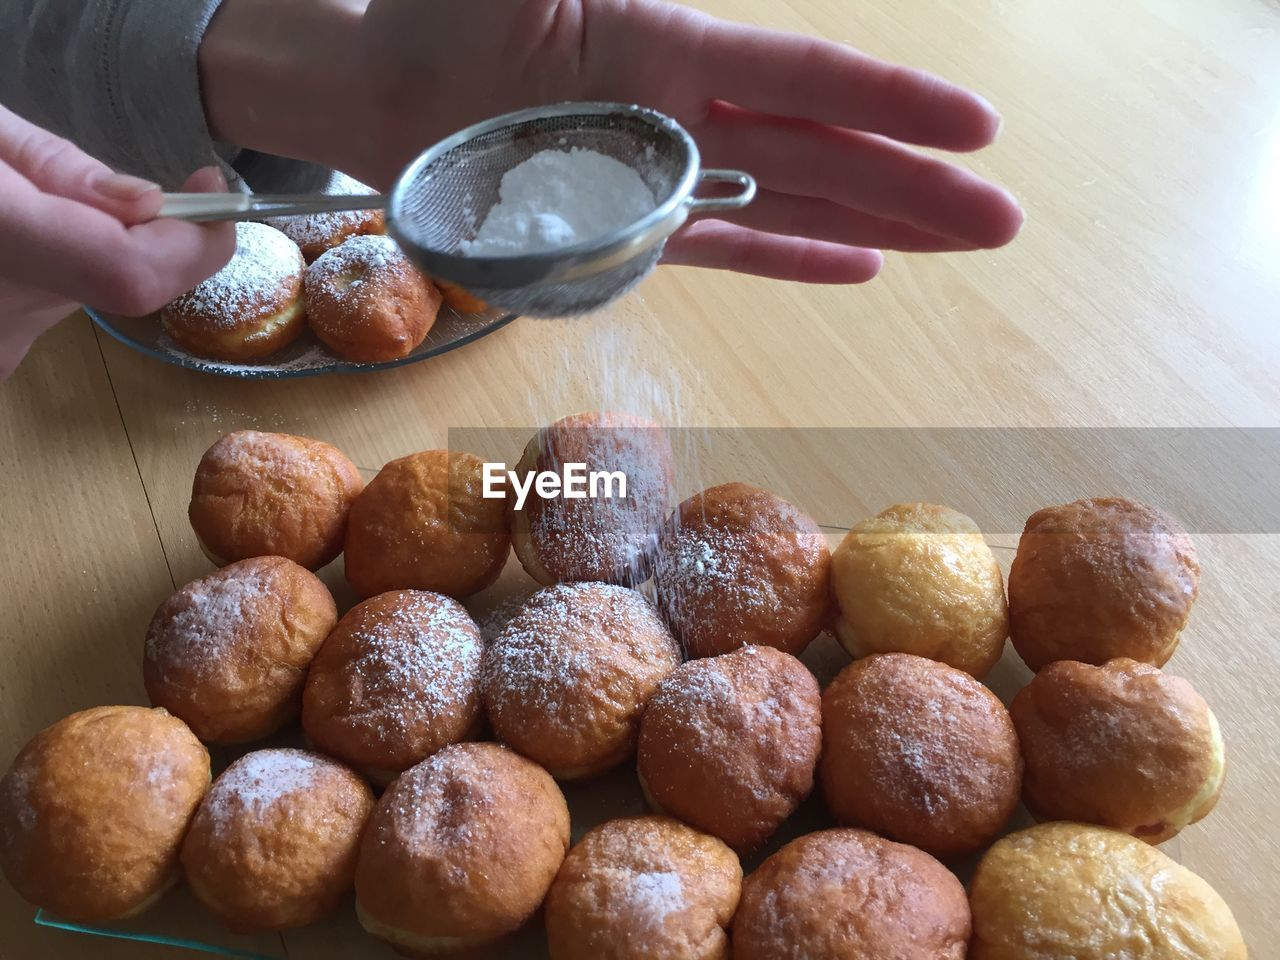 Cropped Image Of Hand Dusting Powdered Sugar On Donuts